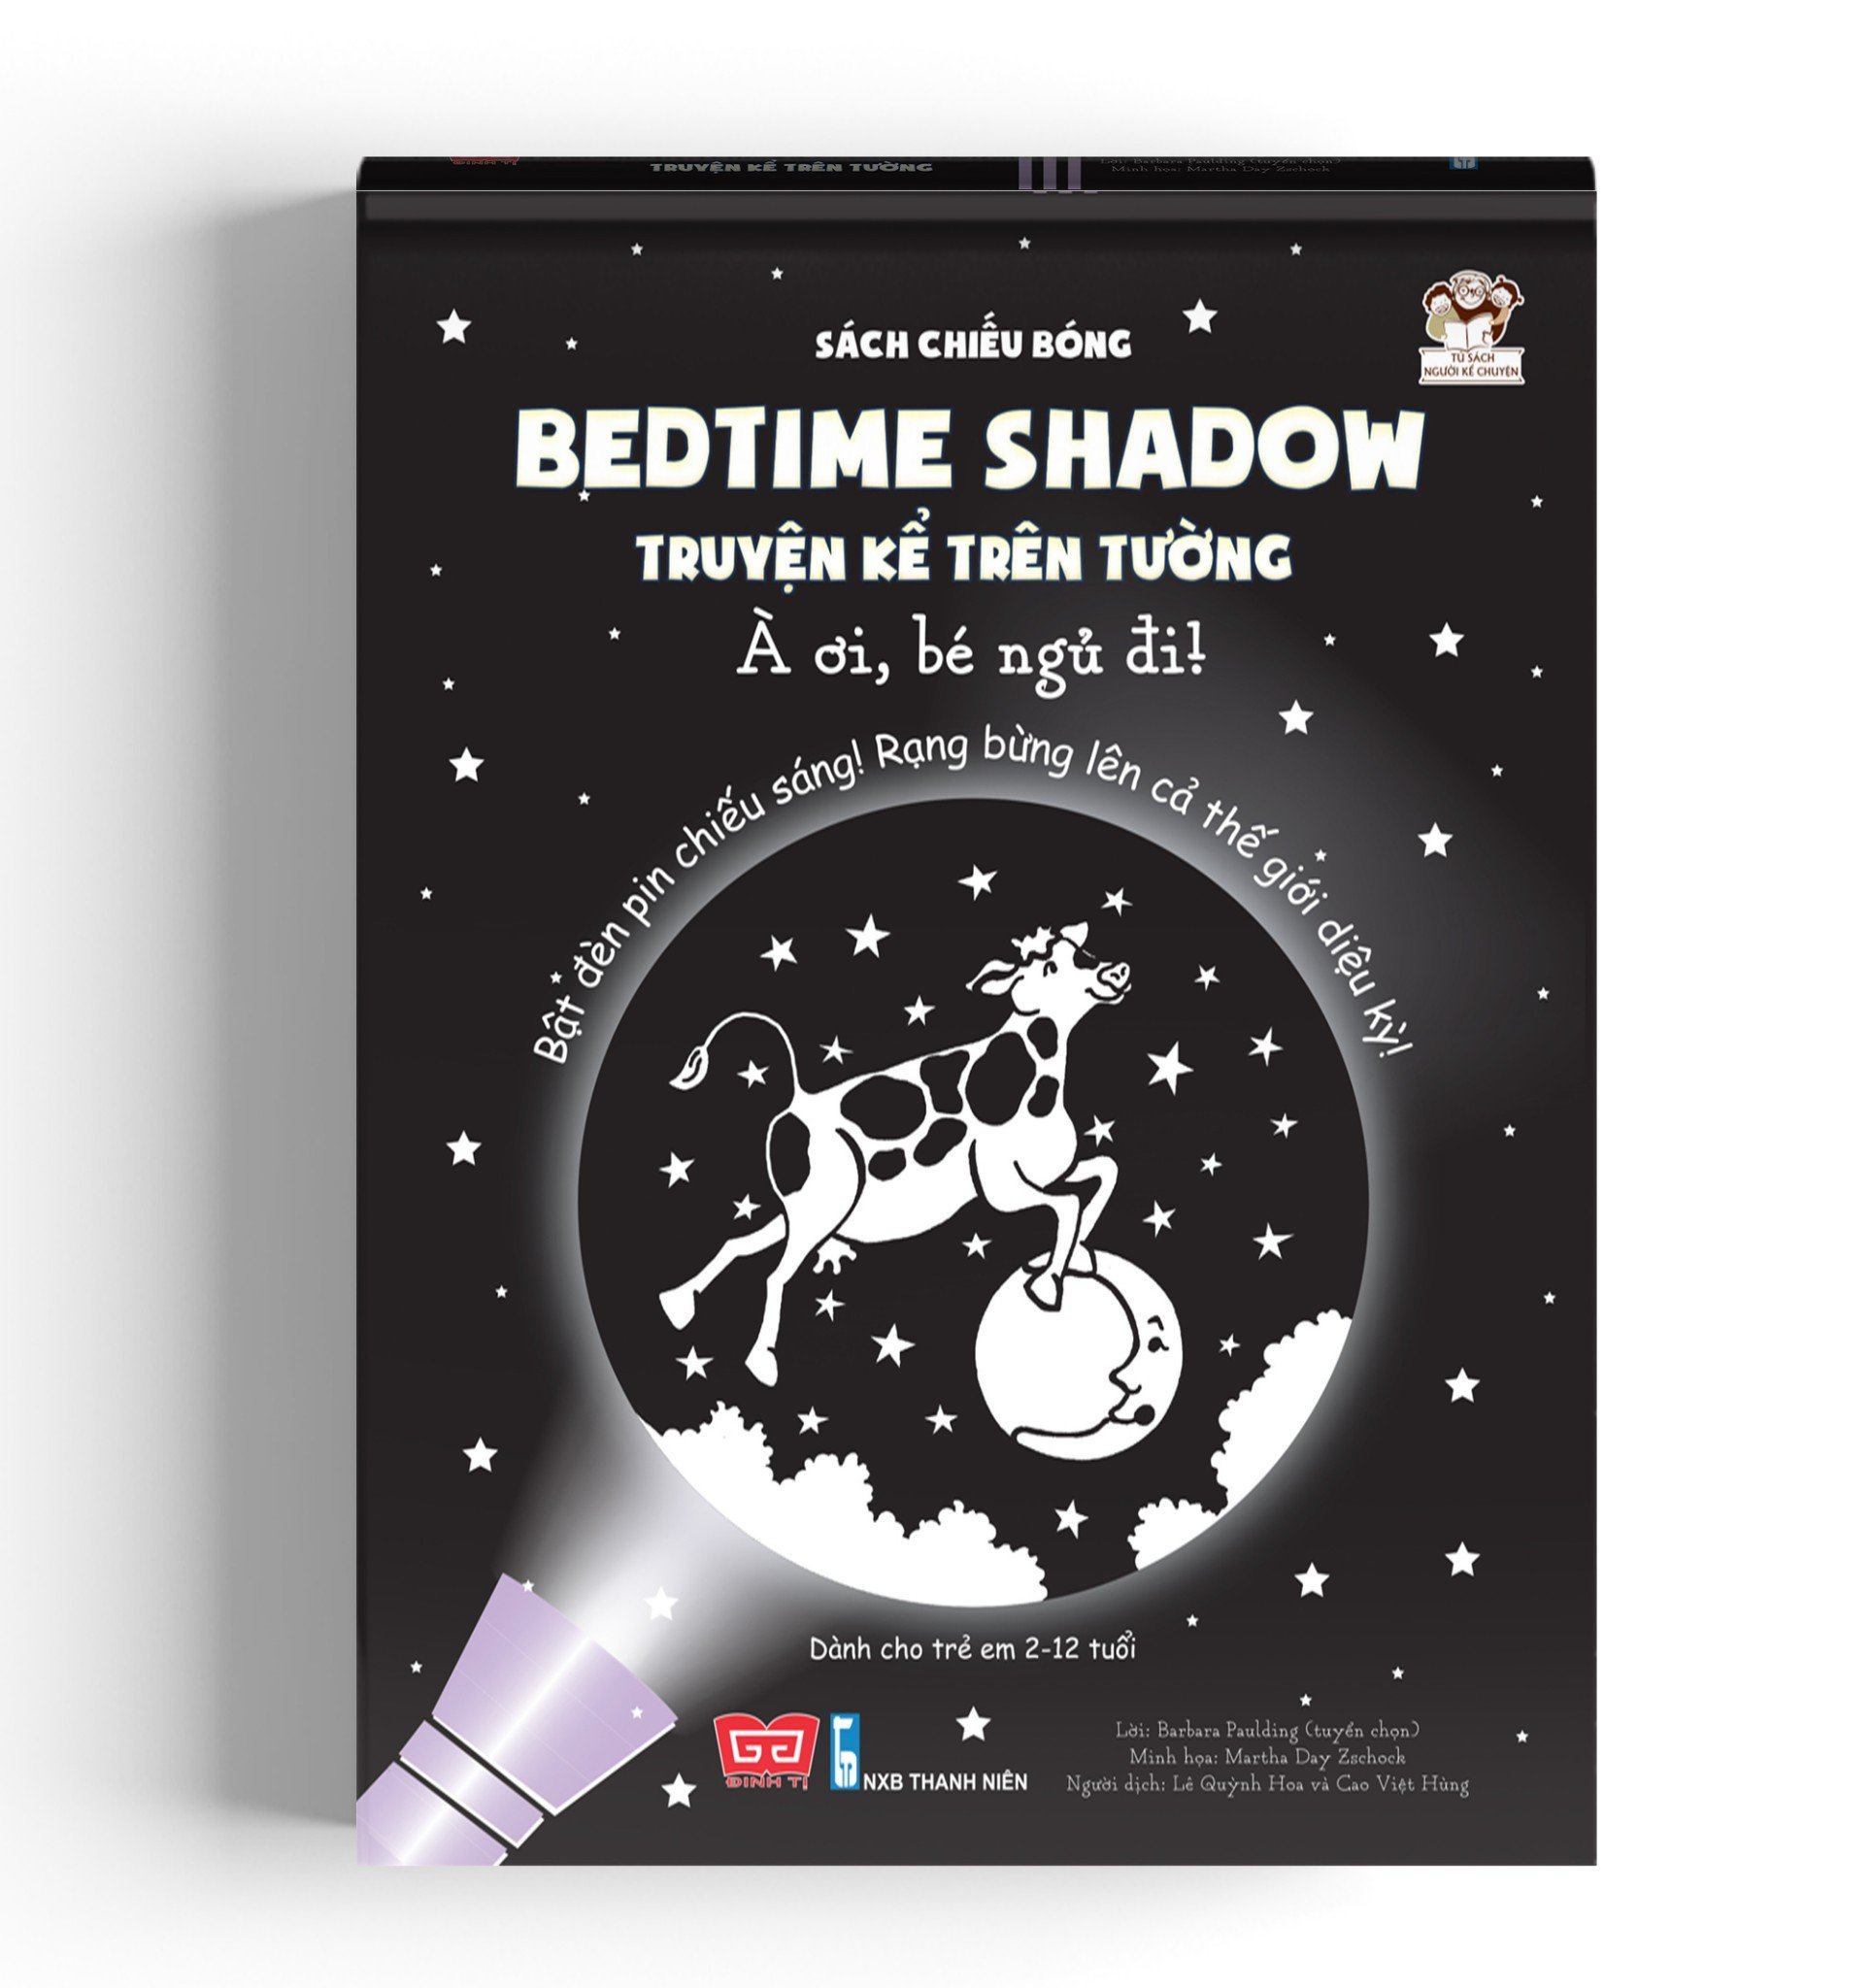 Sách chiếu bóng - Bedtime shadow – Truyện kể trên tường - À ơi, bé ngủ đi!